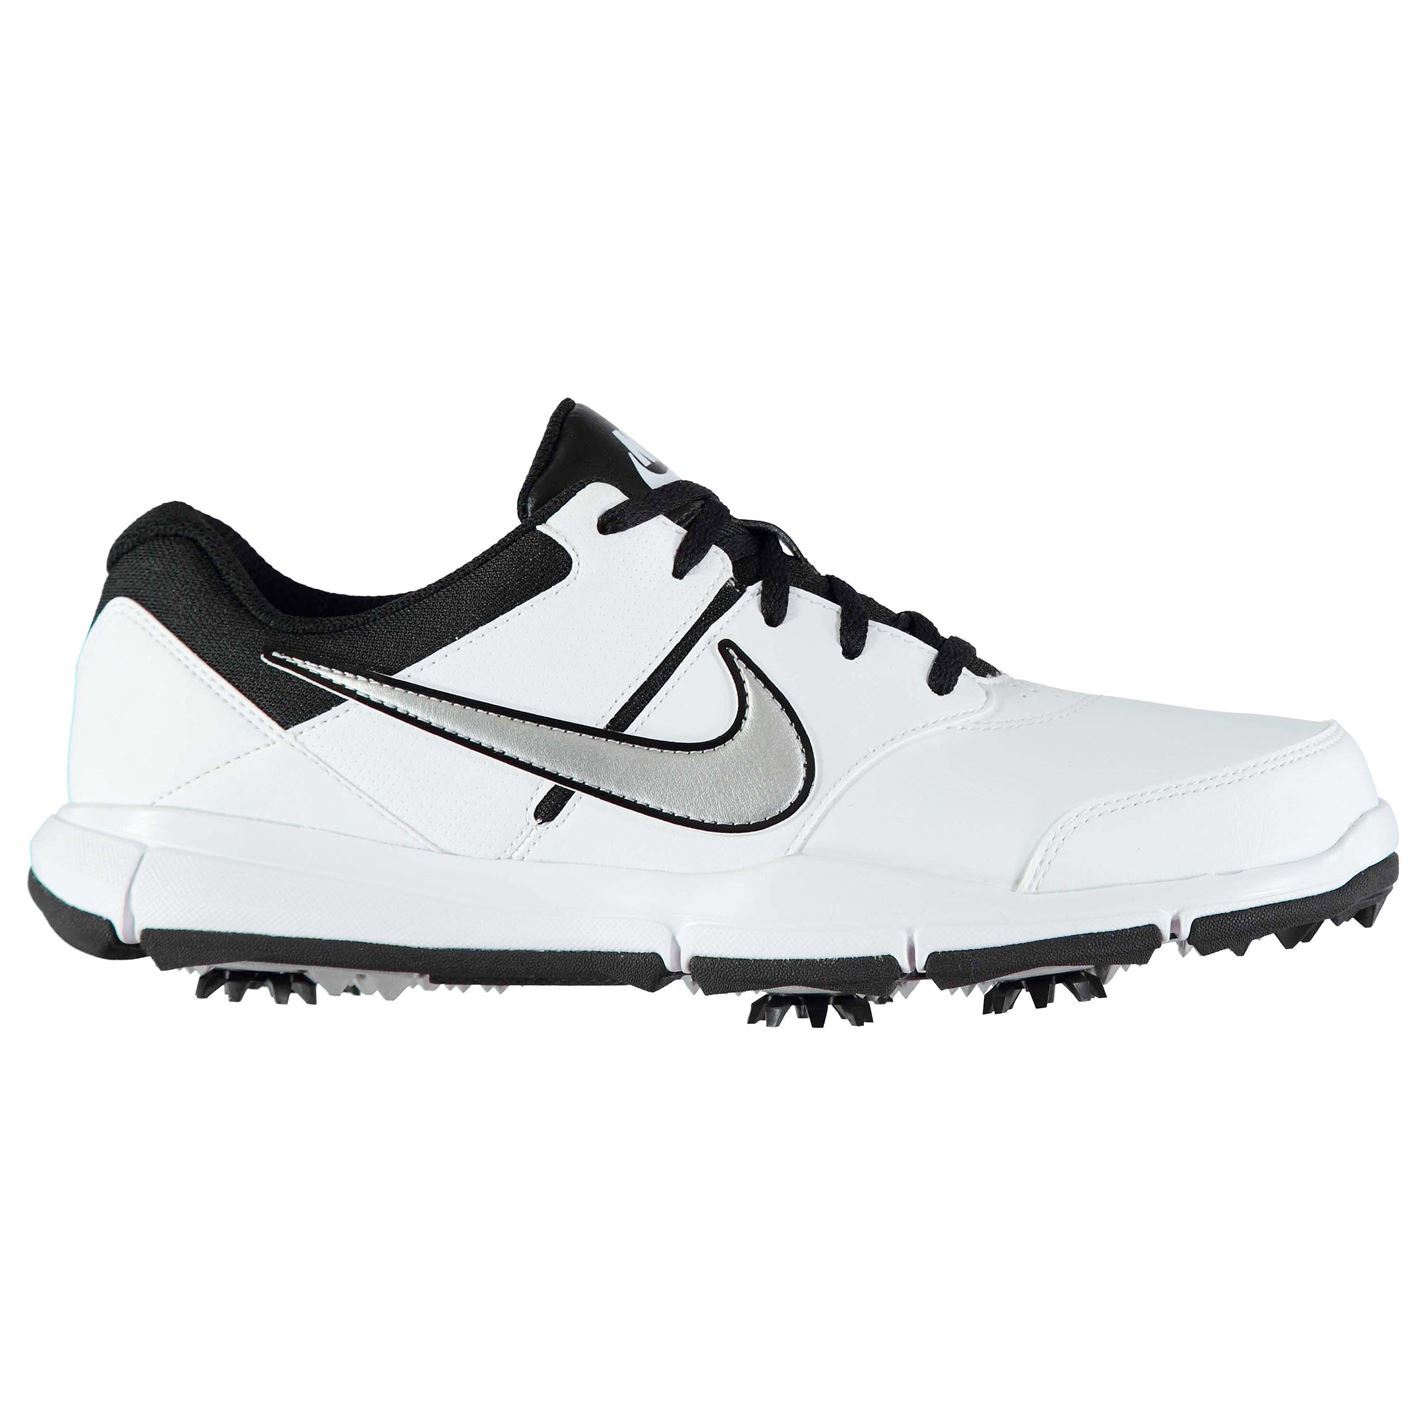 Nike-Durasport-4-Spiked-Golf-Shoes-Mens-Spikes-Footwear thumbnail 14